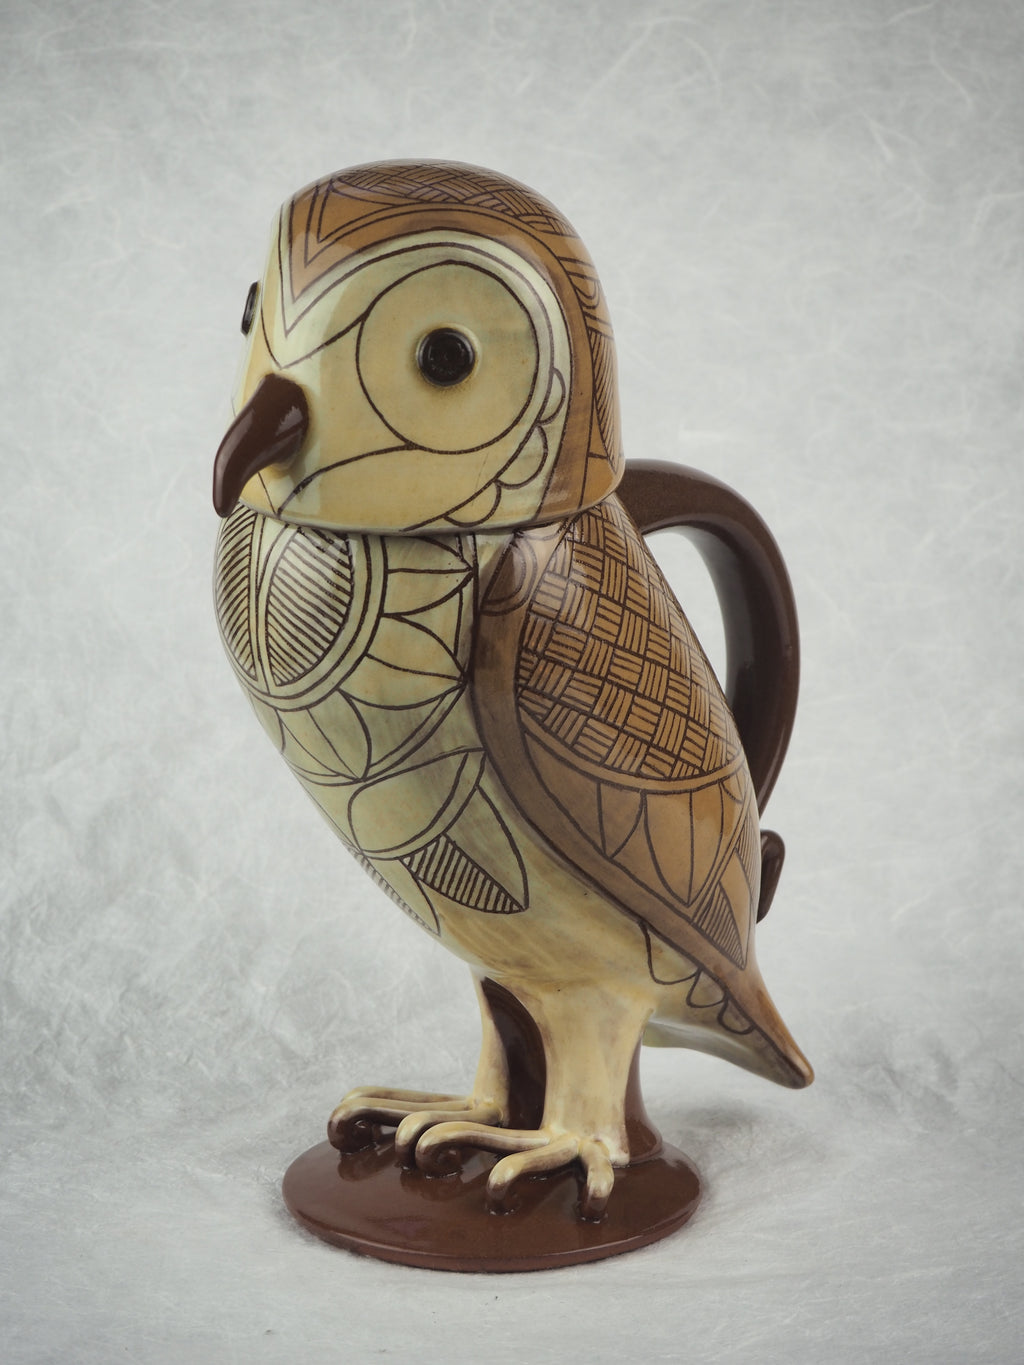 Arthur, Phil – Lidded Barn Owl Jug